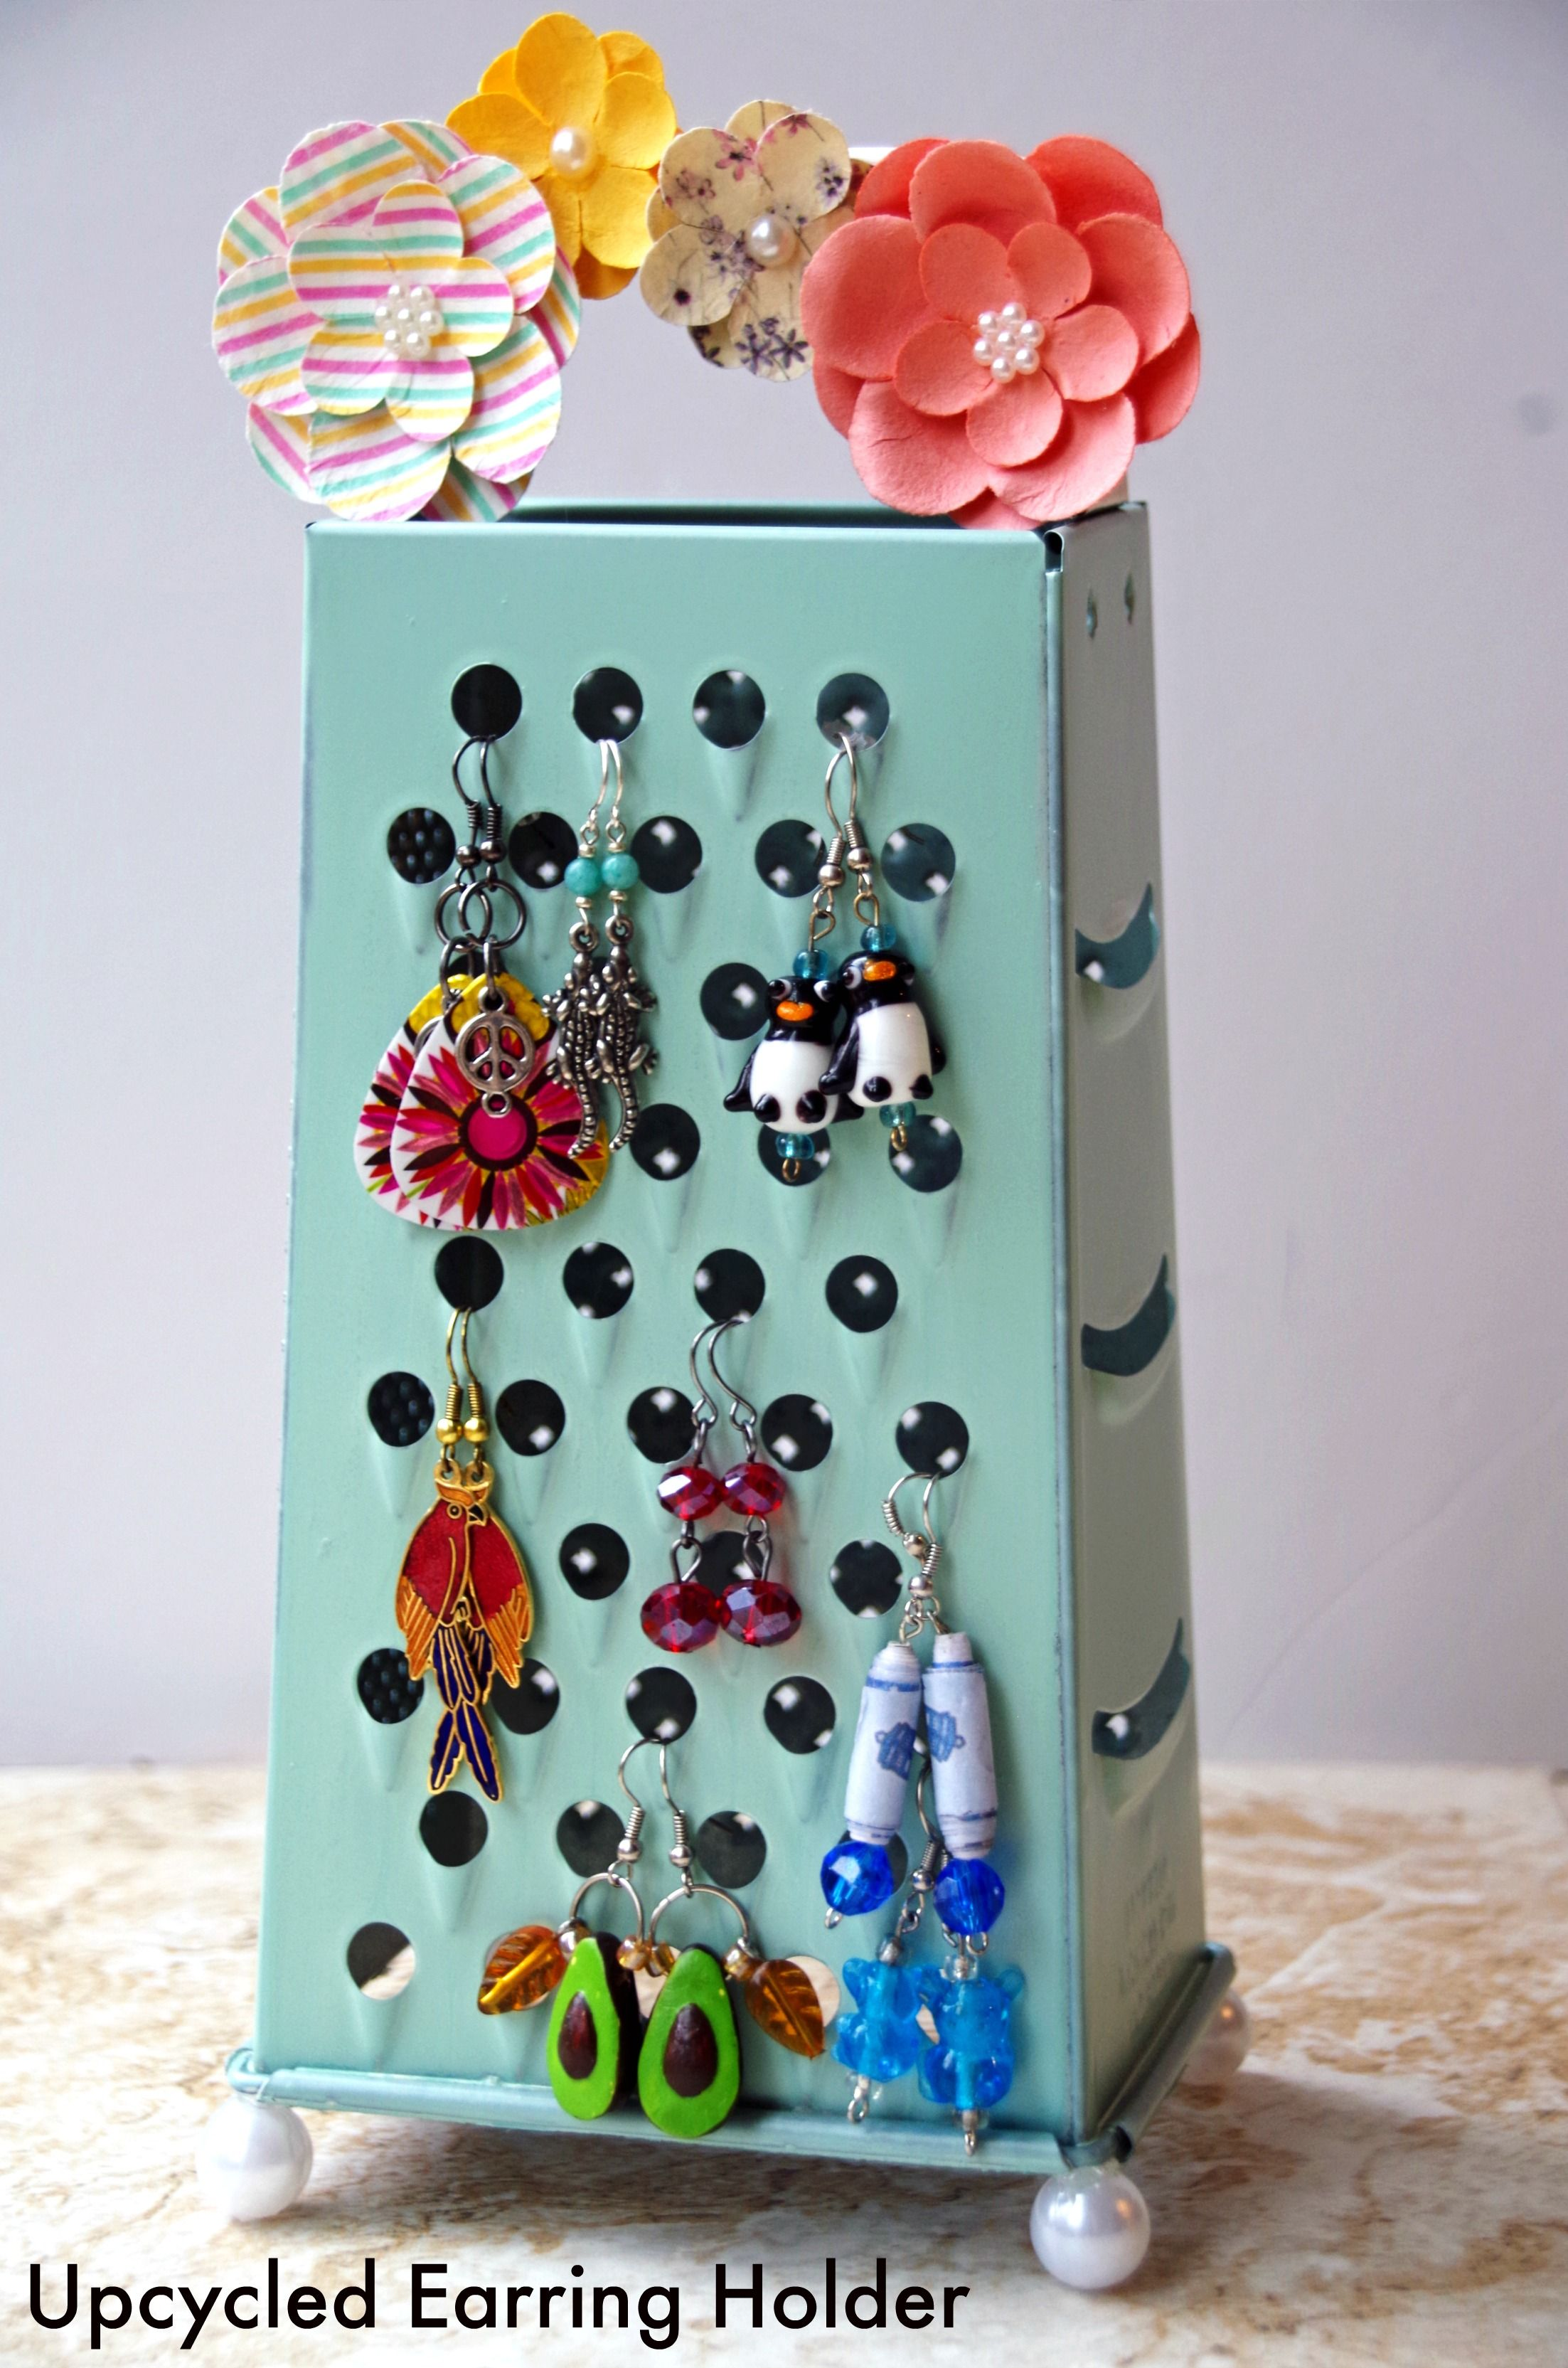 Easy Homemade Earring Holder from an Old Cheese Grater